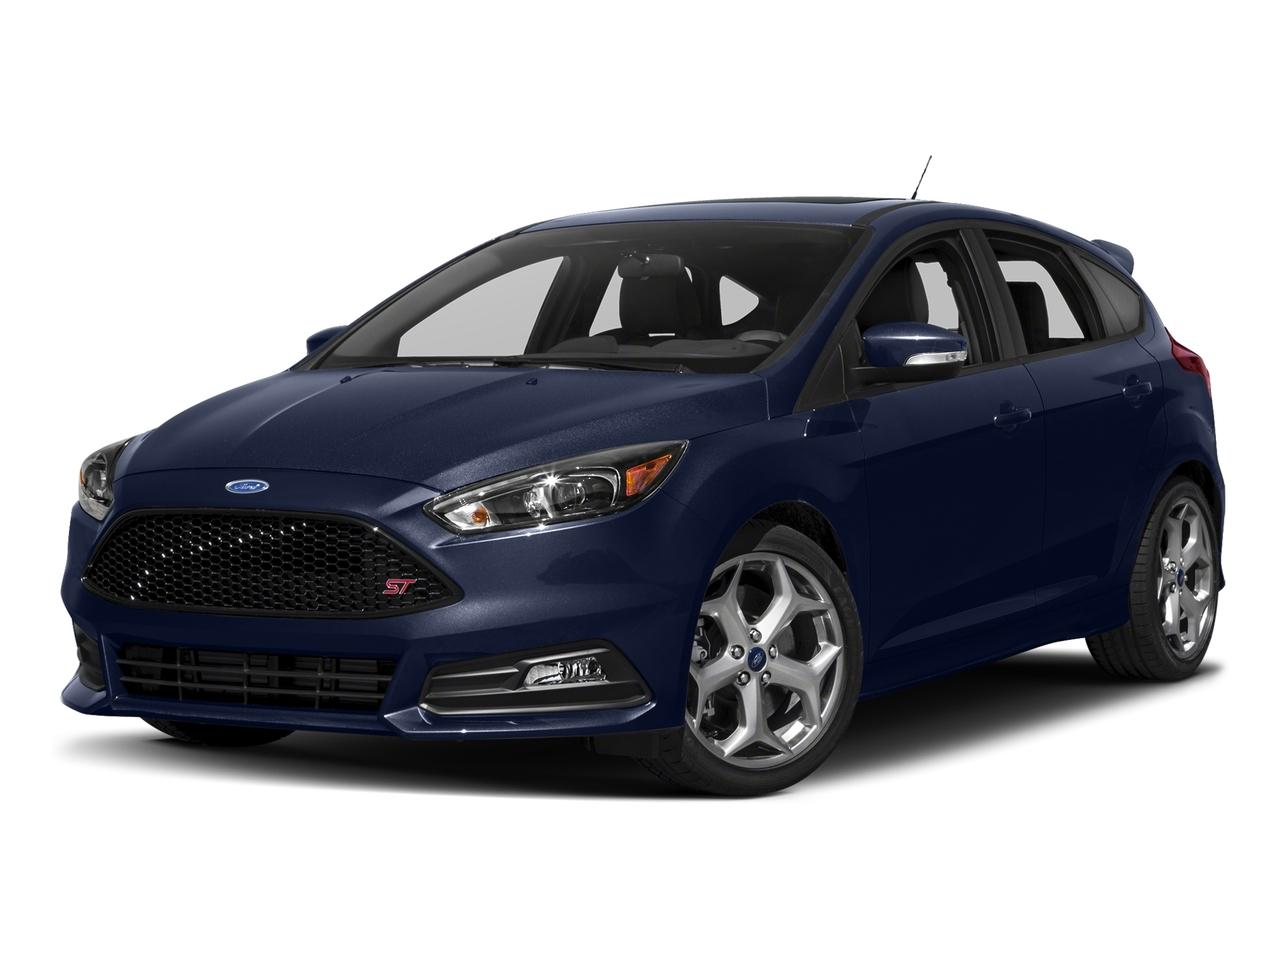 2017 Ford Focus Vehicle Photo in TERRYVILLE, CT 06786-5904